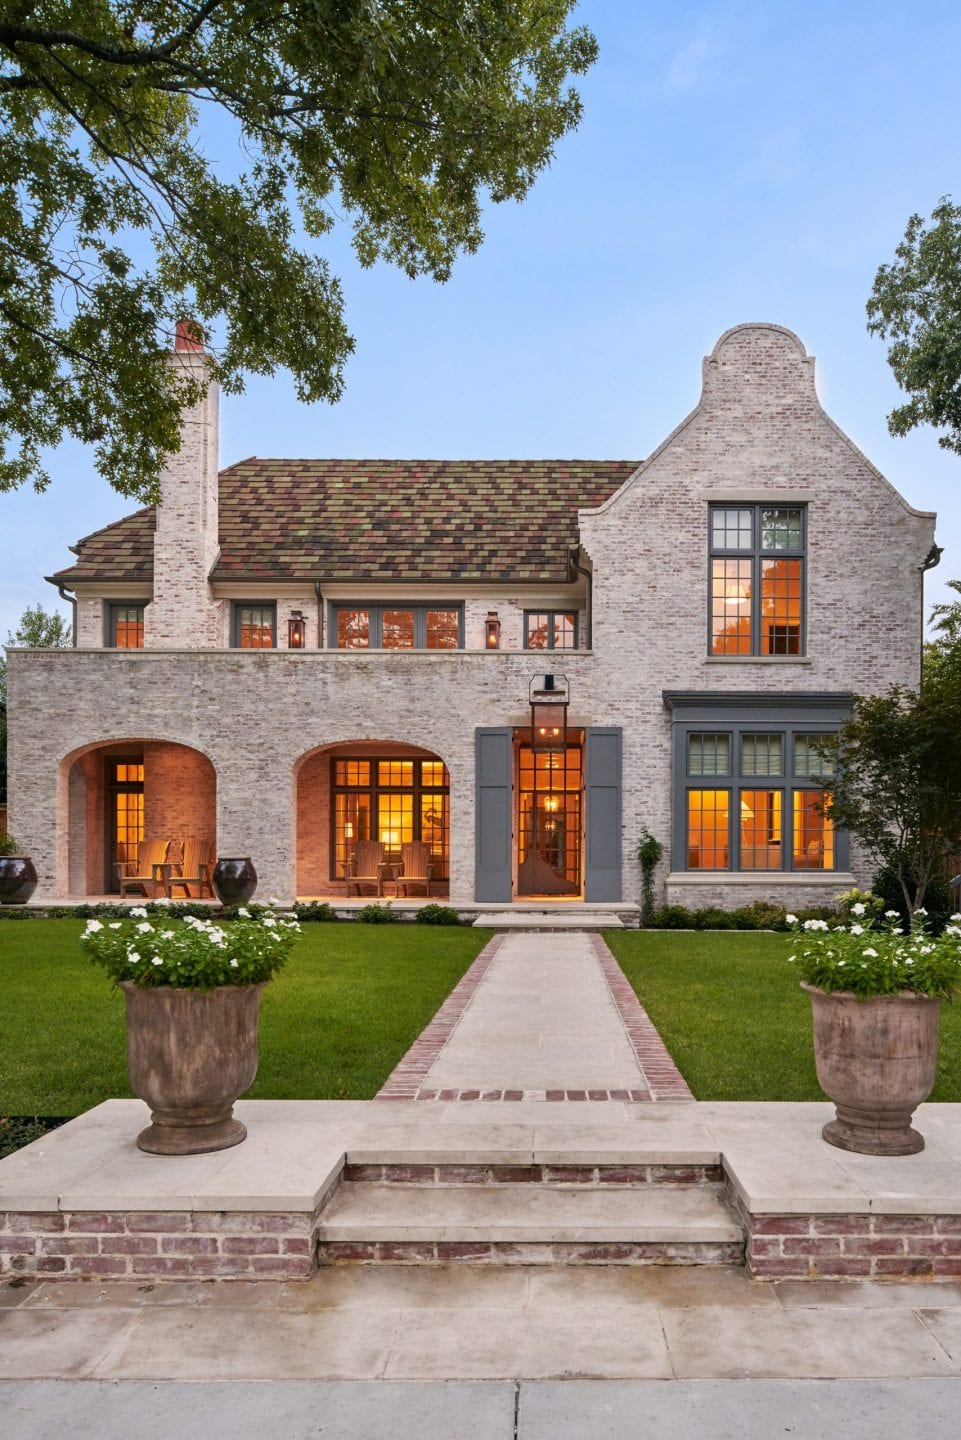 Dallas Residence Ludowici Roof Tile